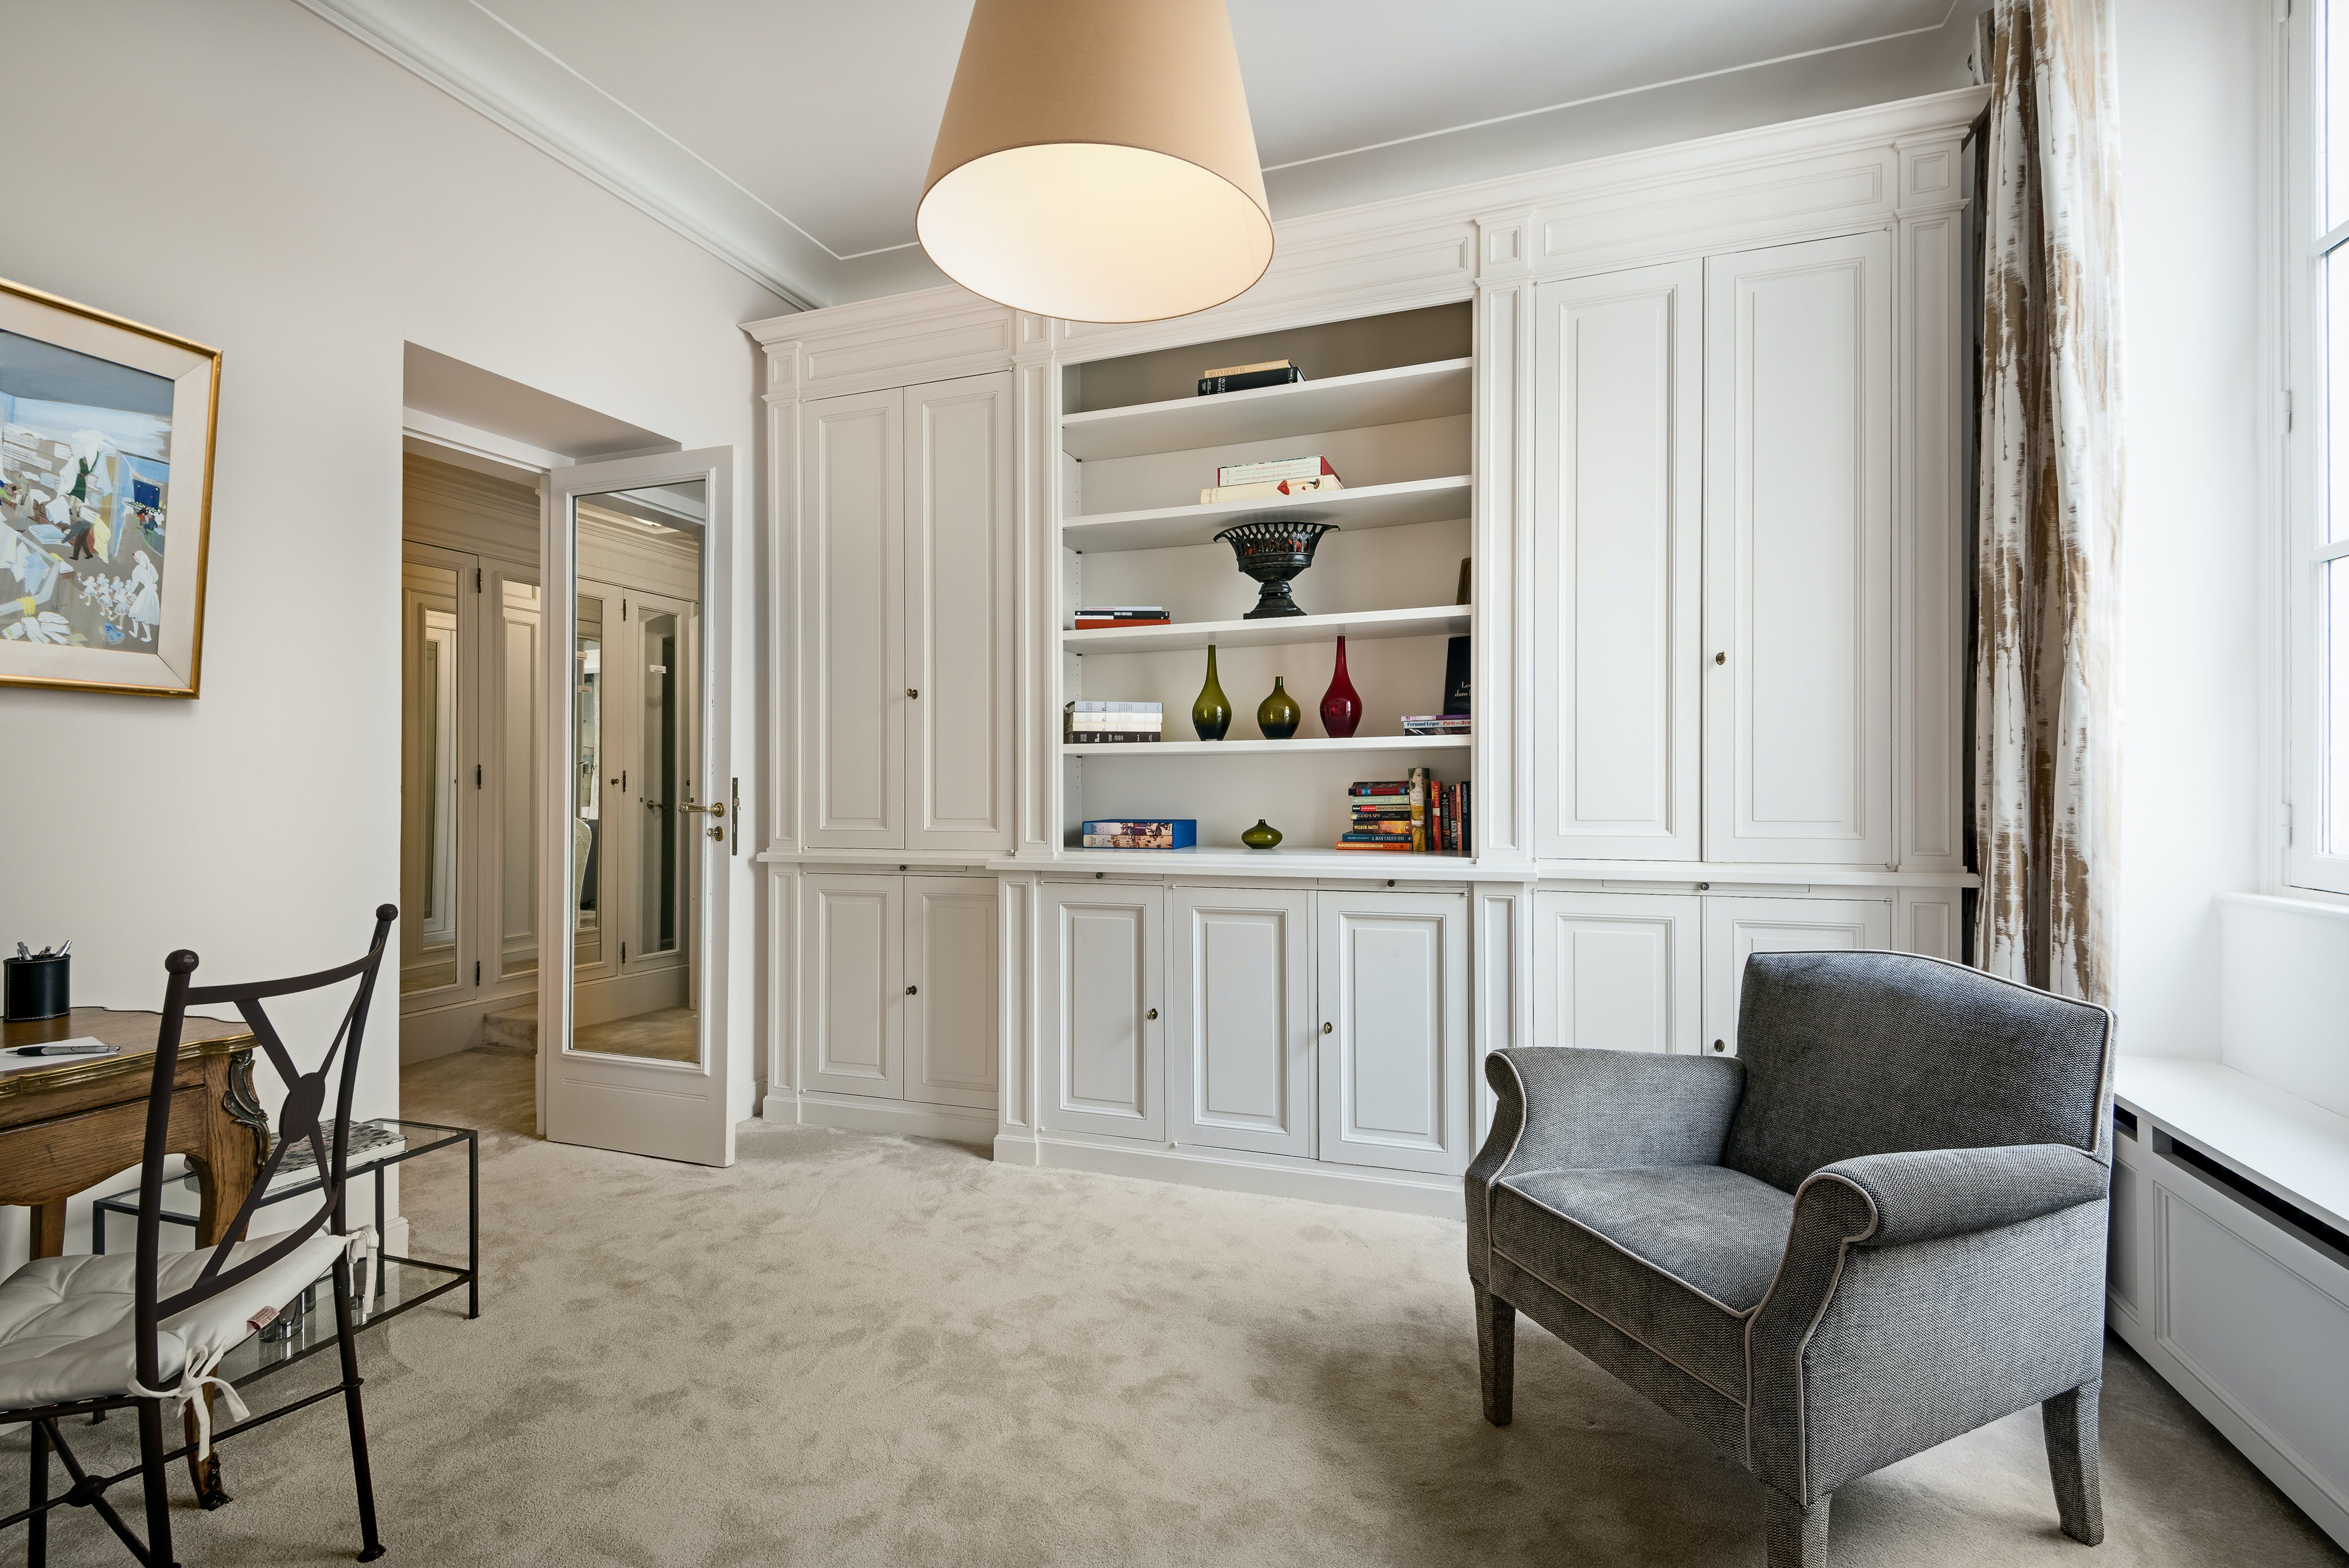 Appartement Palais Royal II